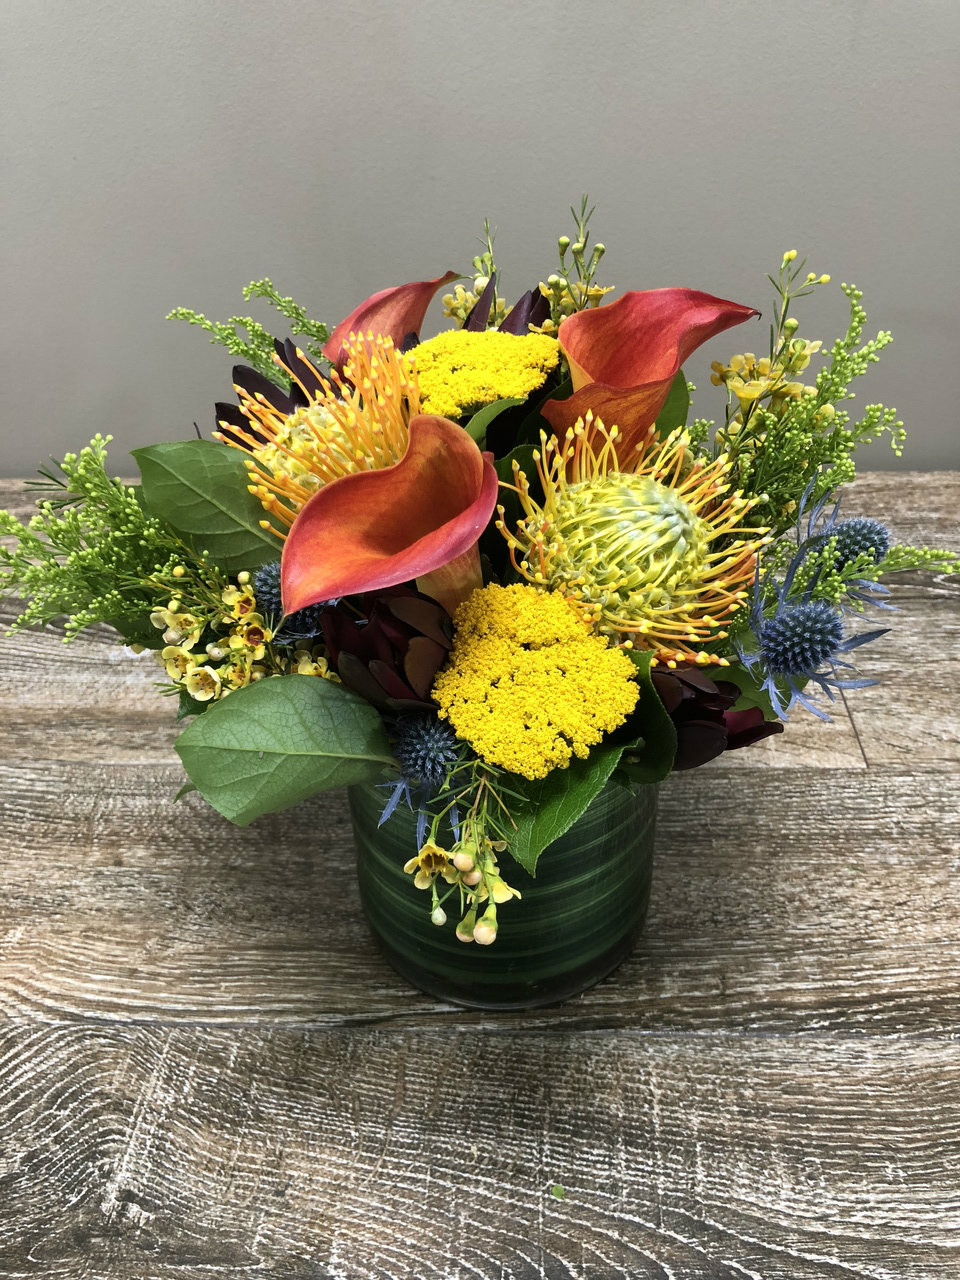 Cool nights rockville md palace florists cool nights showcases callas protea thistle and other beautiful flowers in a clear cylinder mightylinksfo